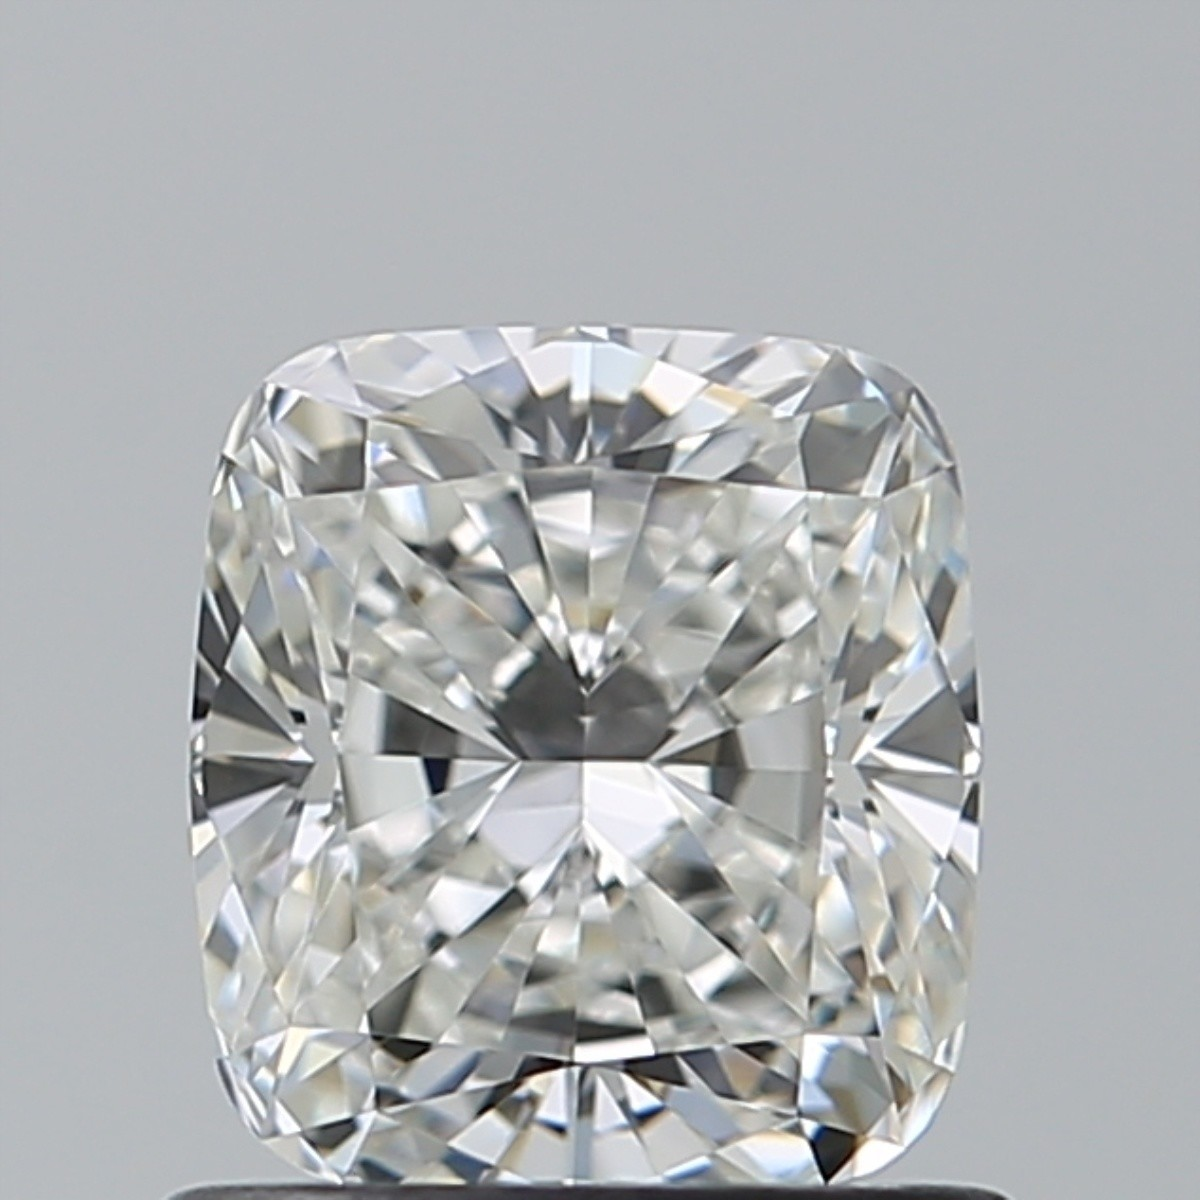 1.01 Carat Cushion Brilliant Diamond (H/IF)